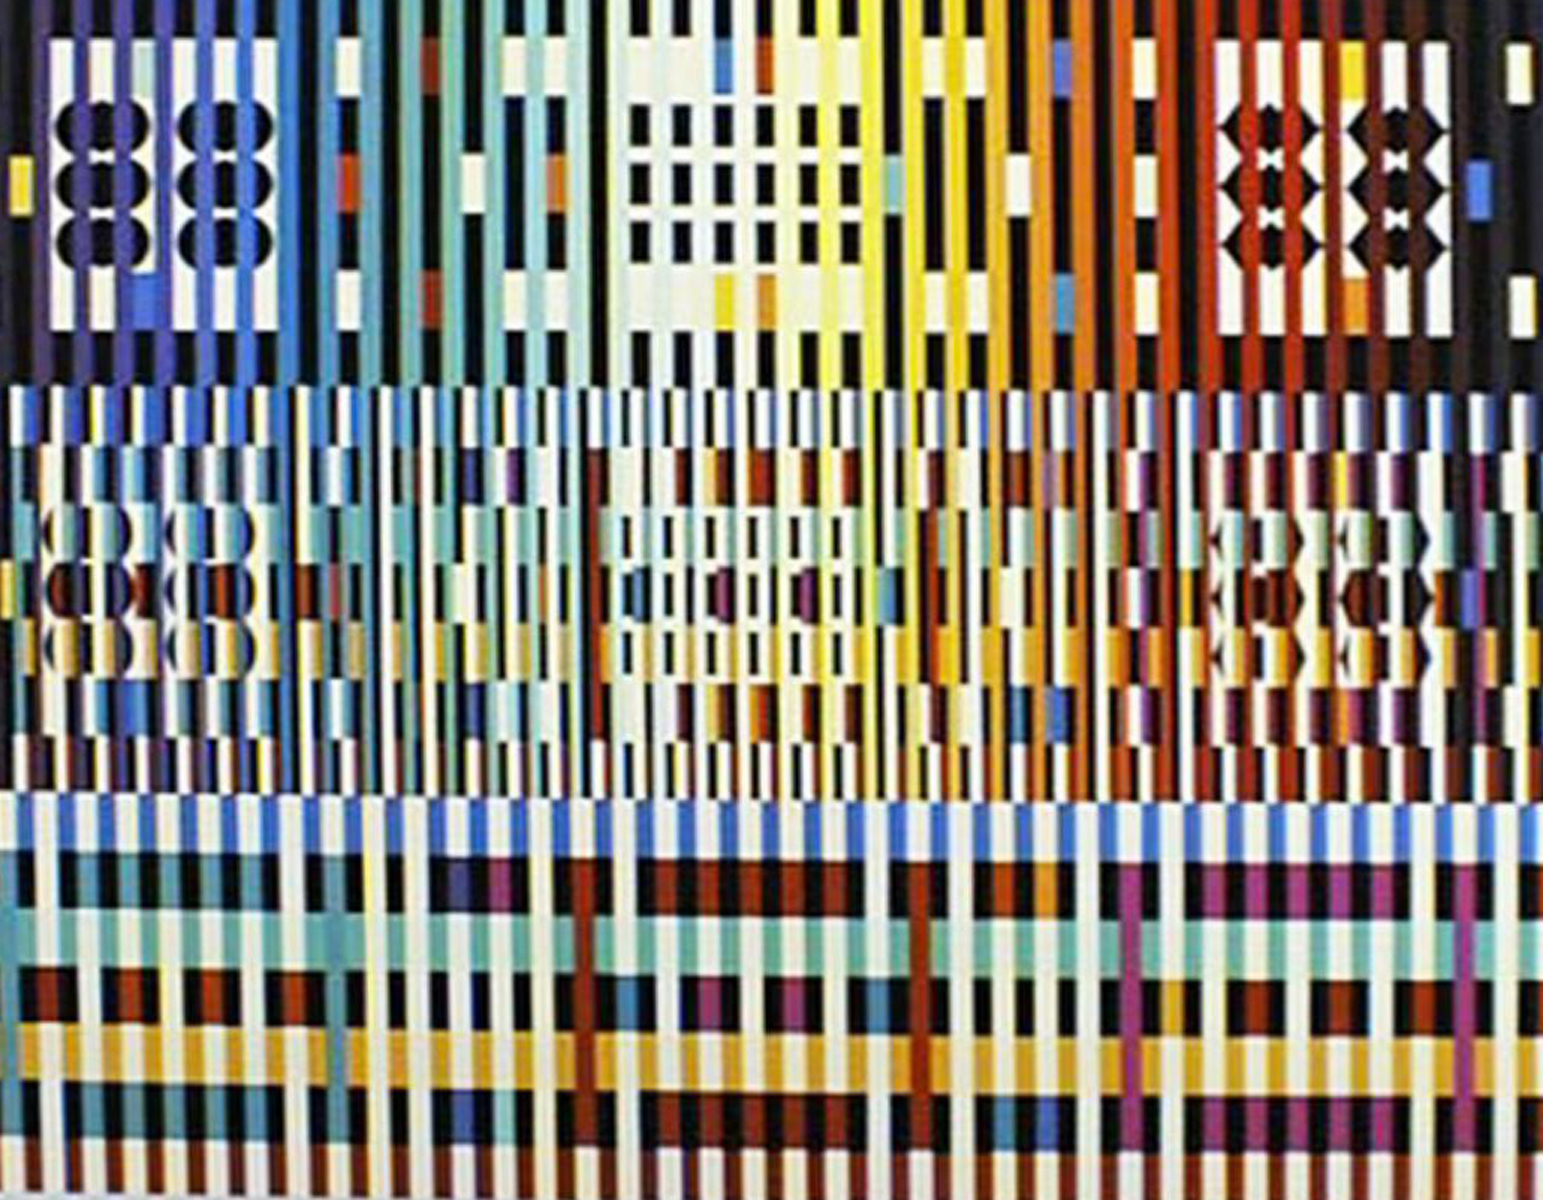 Blessing 1988 by Yaacov Agam